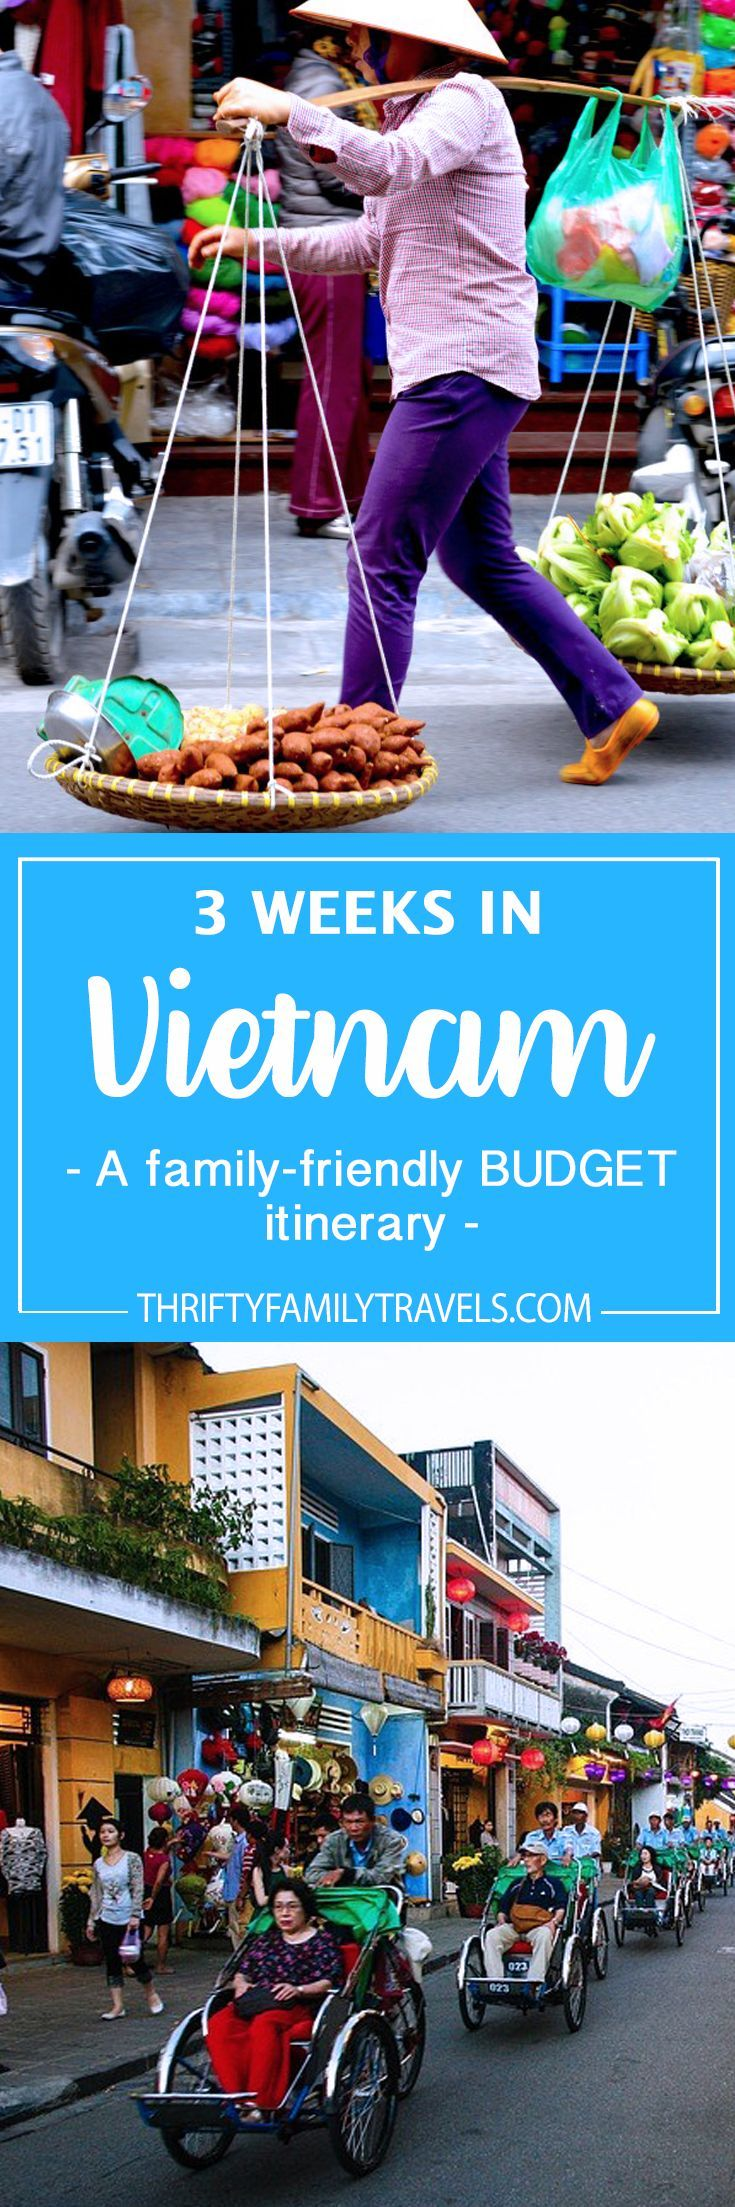 Budget Family Trip to Vietnam | Vietnam with Kids | Family Itinerary Vietnam | Things to do in Vietnam | Where to stay in Vietnam | Budget Vietnam